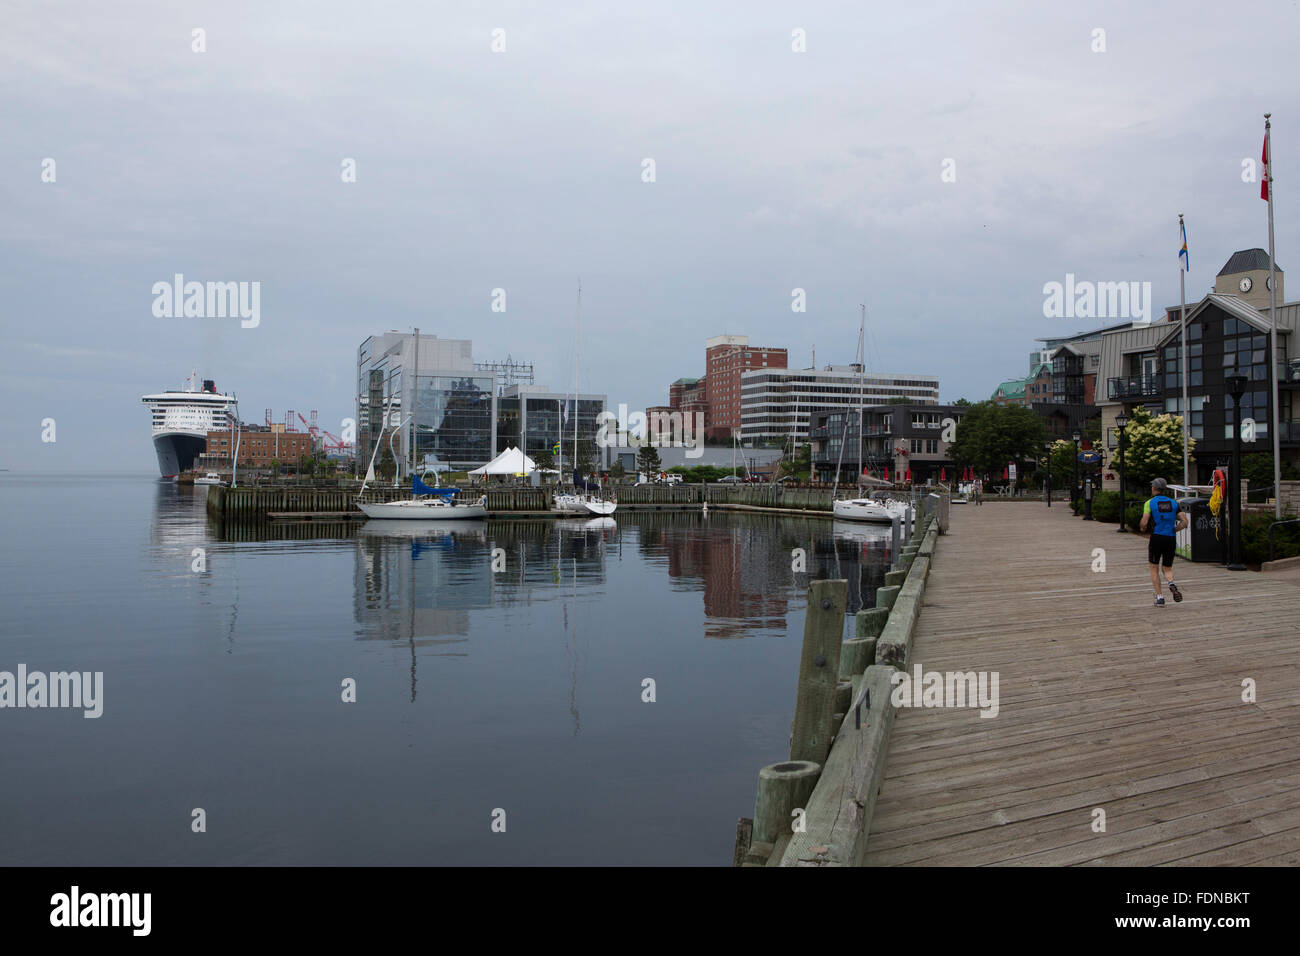 A man jogs on the wooden wharves by the waterfront in Halifax, Canada. The wharves are a legacy of the freight trade - Stock Image